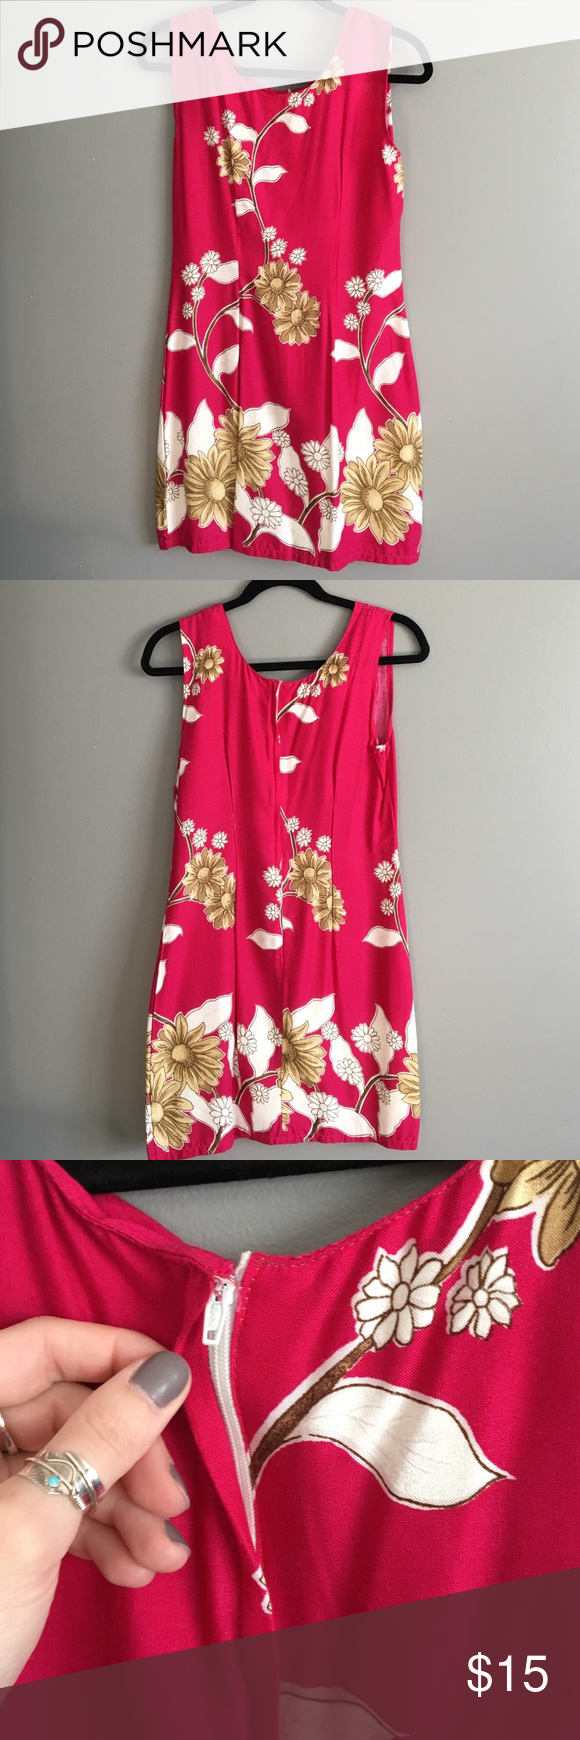 Pink shift dress flaws customer support and delivery